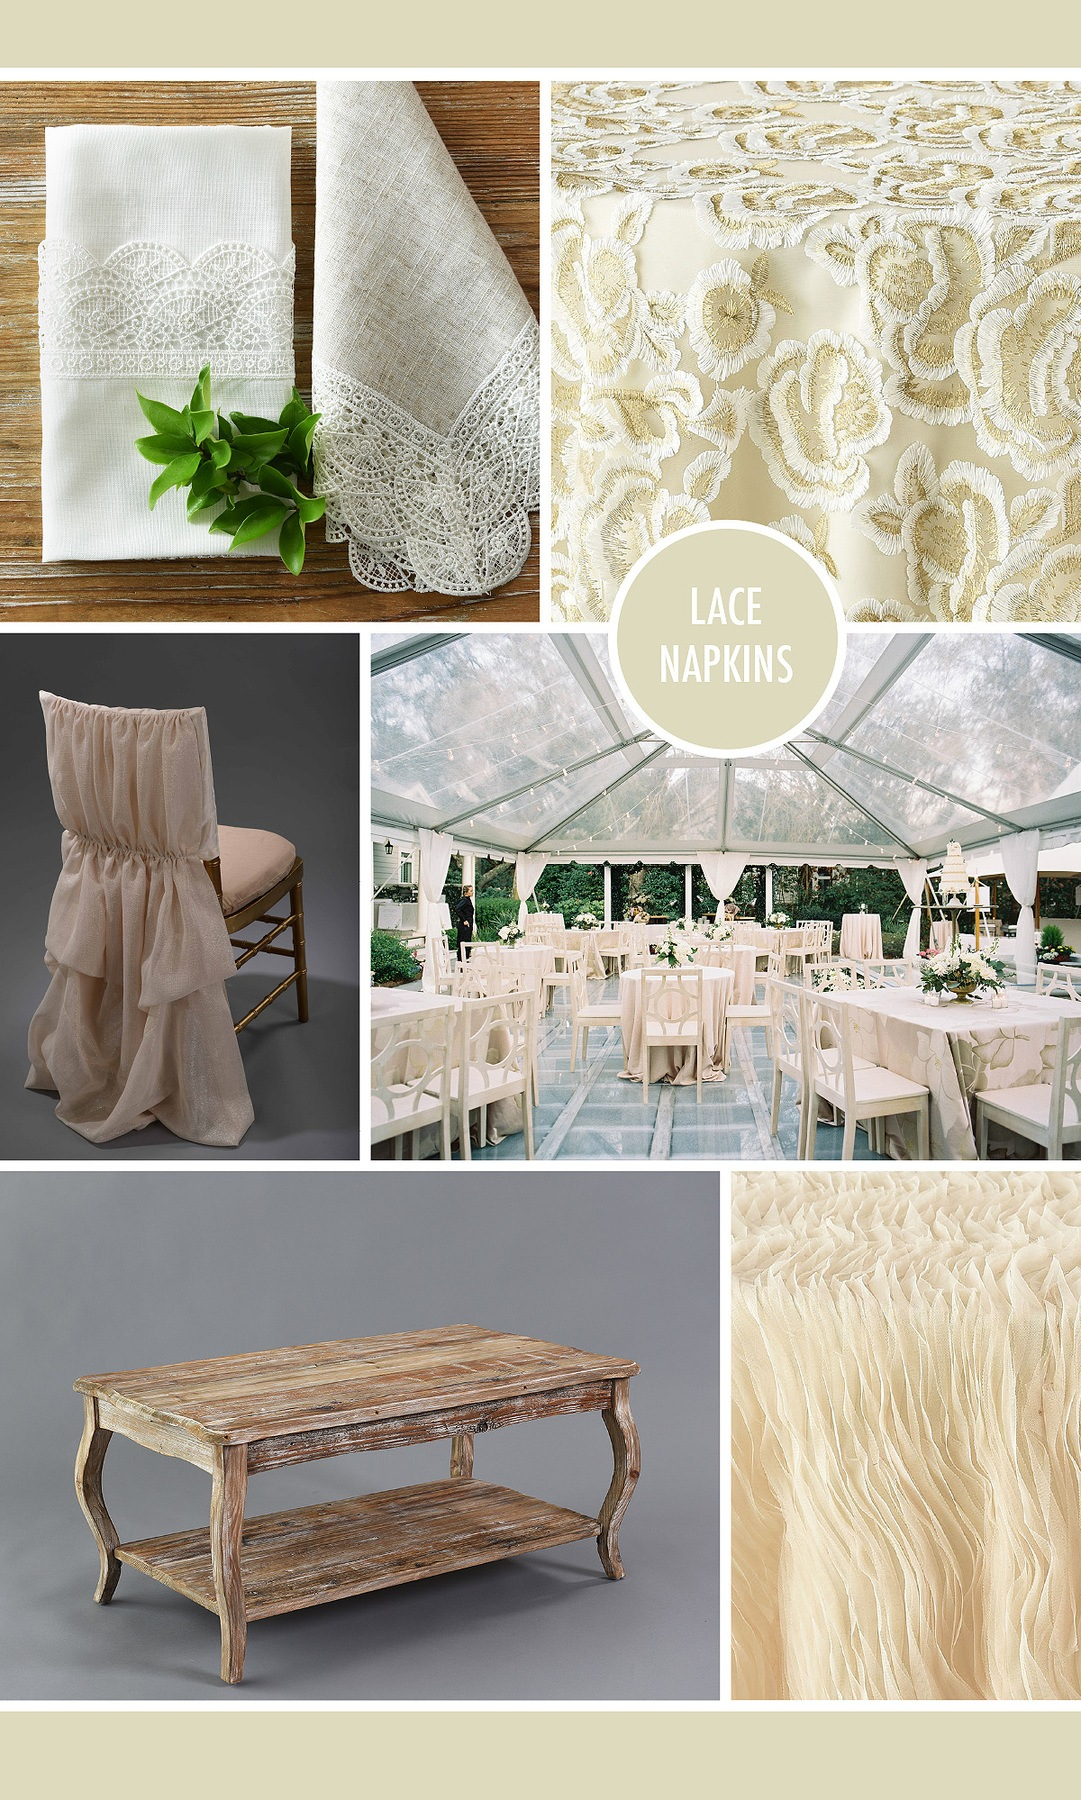 napkin designs elevate your event design nuage rental wedding napkins lace virgil accent table complete the look with ivory athena chairback and furniture like our vintage wood